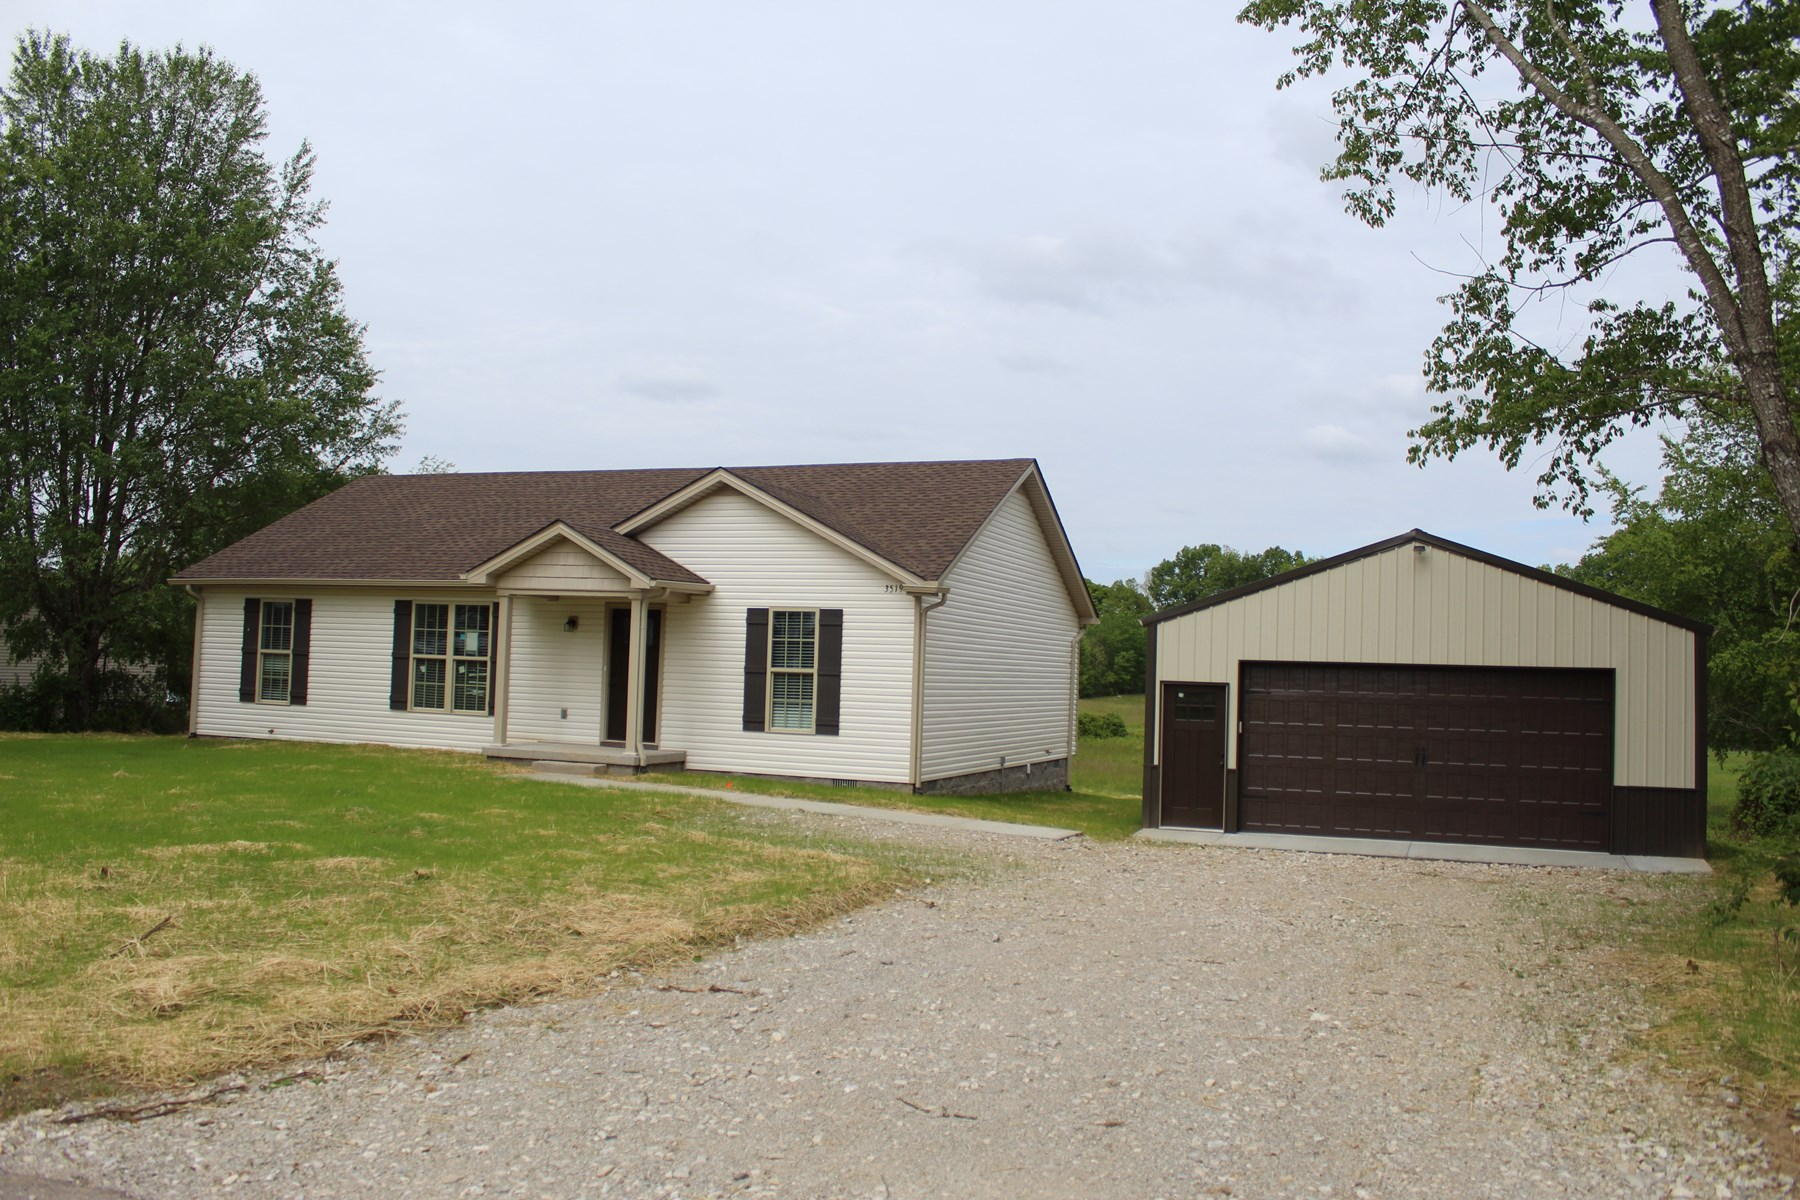 New 3 bedroom 2 bath home for sale in Warren County Ky.